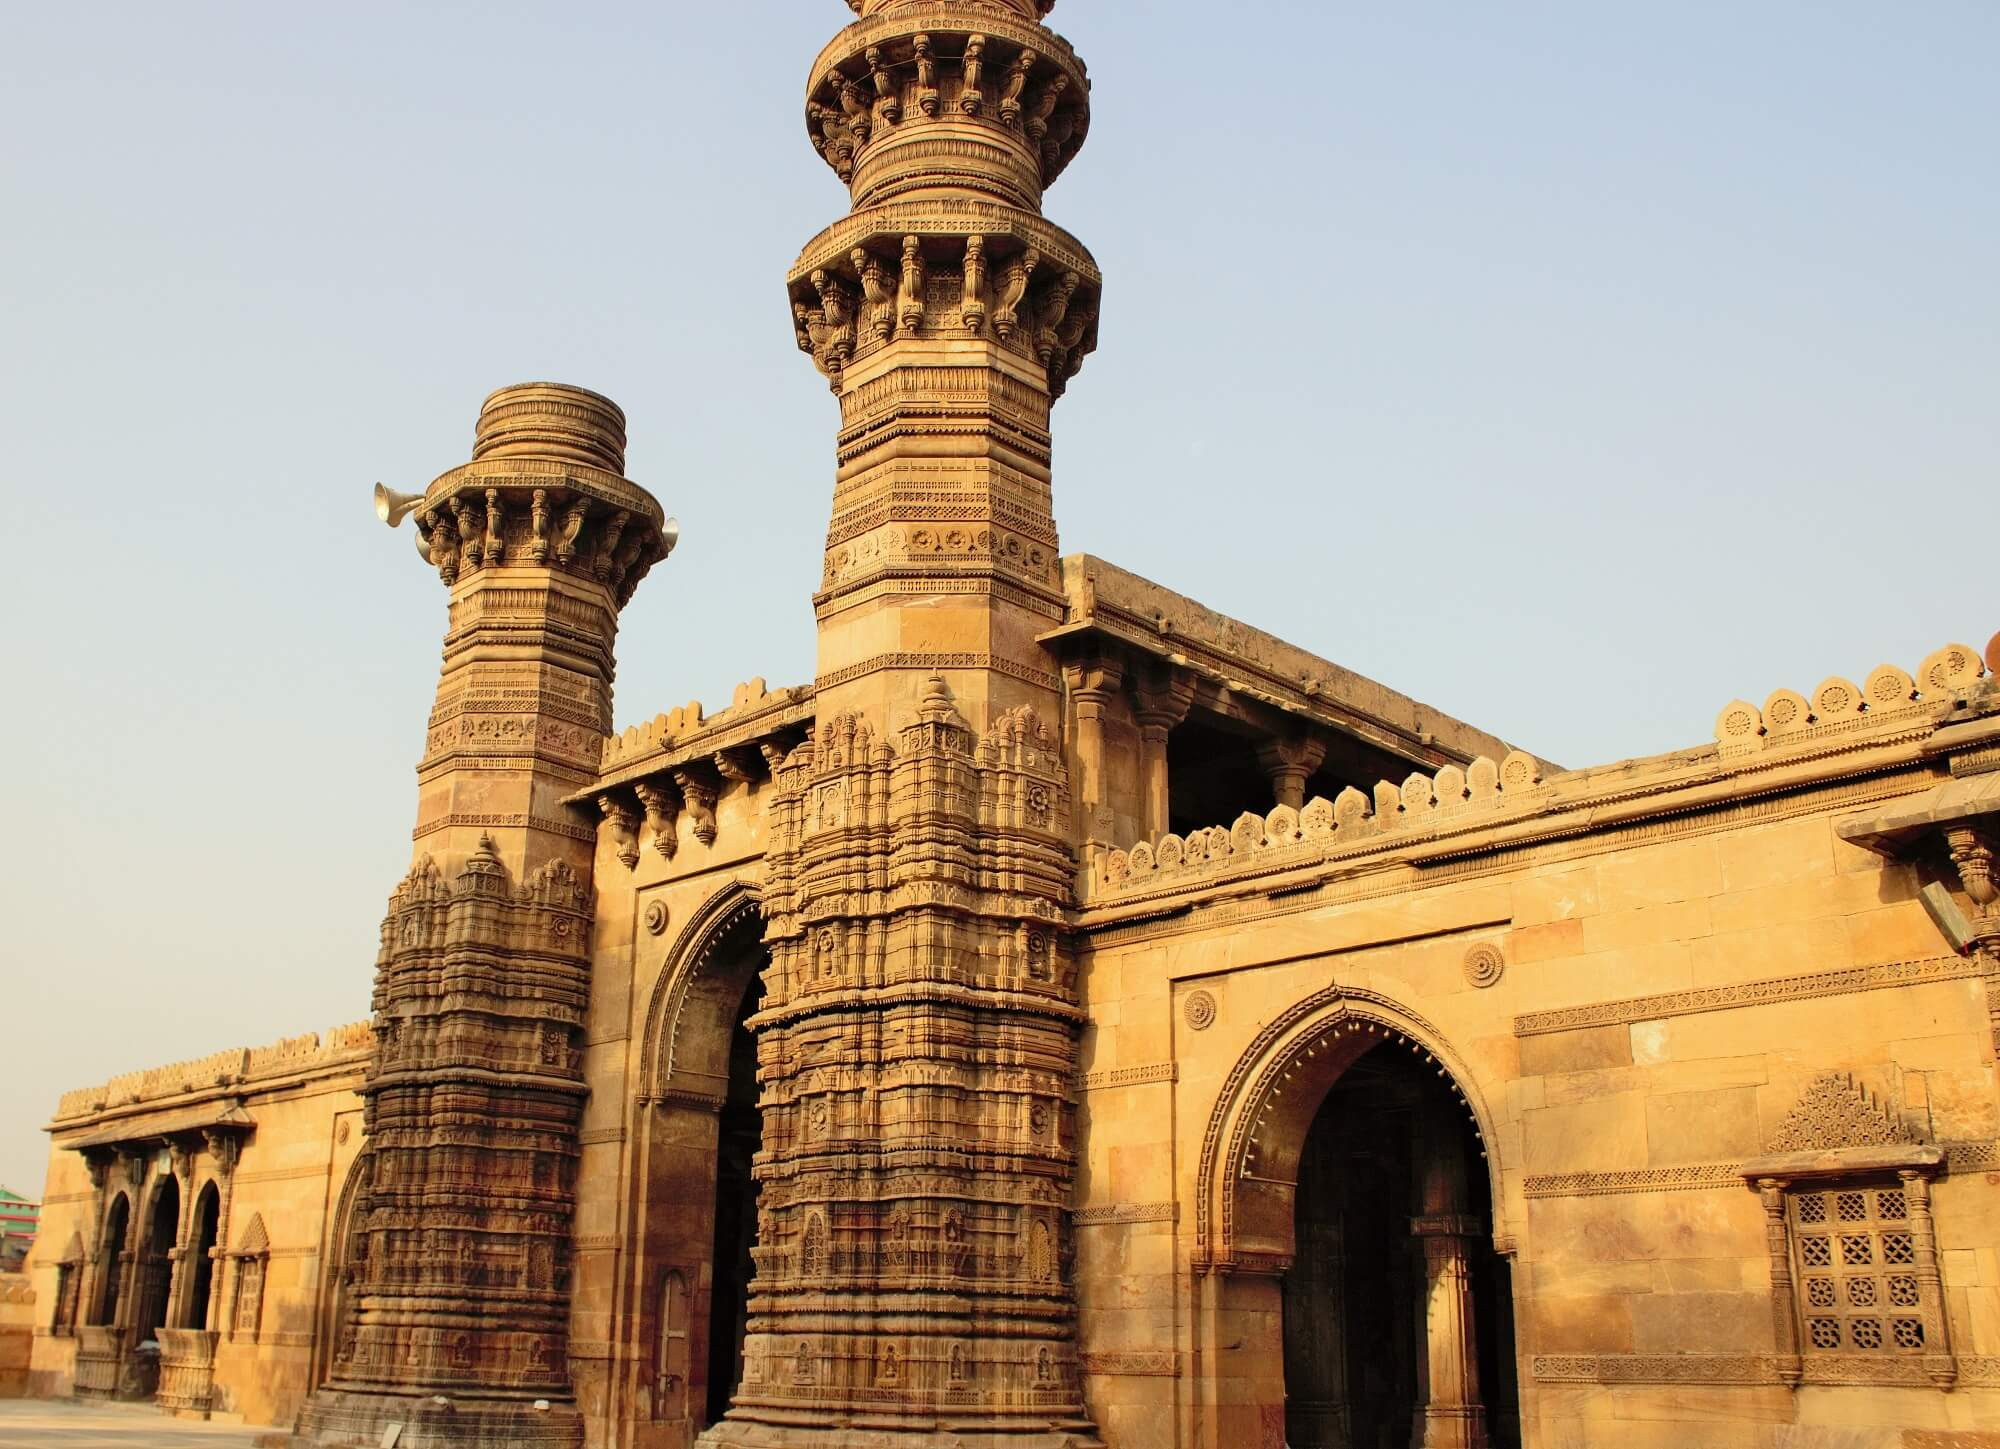 Ahmedabad Has Got Leaning Tower Of India And You Need To Check It Out